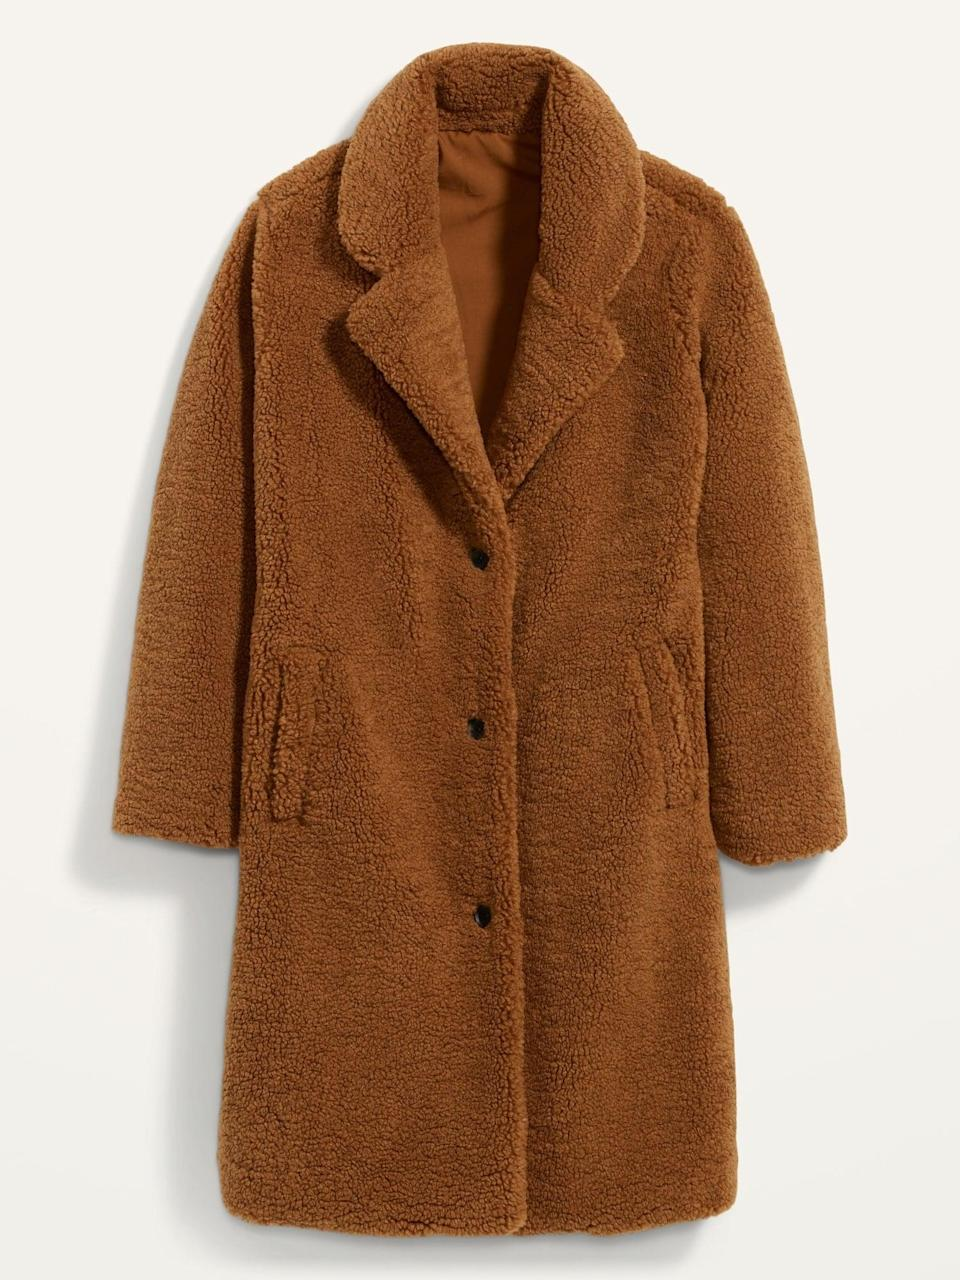 <p>This <span>Oversized Cozy Sherpa Overcoat</span> ($84, originally $100) is the type of coat you can wear over joggers, jeans, and anything else. It goes with everything.</p>